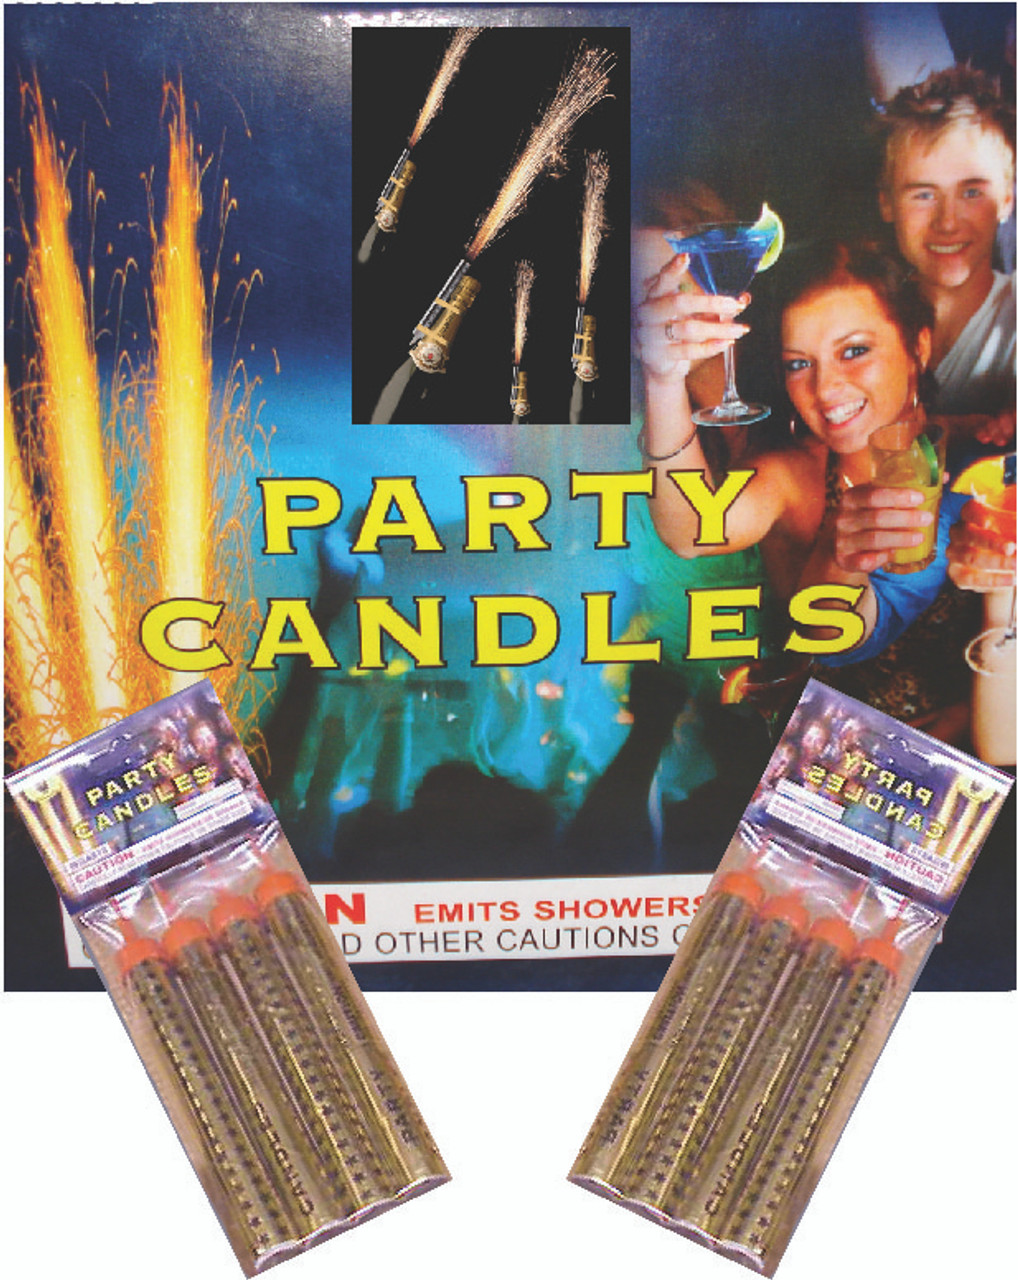 nite, sparx, big birthday candles, champagne bottle sparklers, bottle service, fireworks, club, birthday, party, celebration, lounge, bar, gold, wire, sparkler, candle, firework, fire, party, club, drinks, celebration, wedding, champagne, poppers, party, celebration, new, years, event, custom champagne bottle sparklers, cake sparklers, wedding sparklers, wedding firework displays, wedding fireworks display, celebration candle, wedding firework display, indoor sparklers, fireworks wedding, sparkler bombs, wedding fireworks, party cannons, confetti cannon rental, cake sparklers, fireworks stores in dallas, fireworks stores las vegas, firework stores in las vegas, extra large sparklers, vip bar supplies, buy champagne bottles, bridal supplies, wedding fireworks, wedding decorations, sparklers in bulk, sparklers, nite, sparx, big birthday candles, champagne bottle sparklers, bottle service, fireworks, club, birthday, party, celebration, lounge, bar